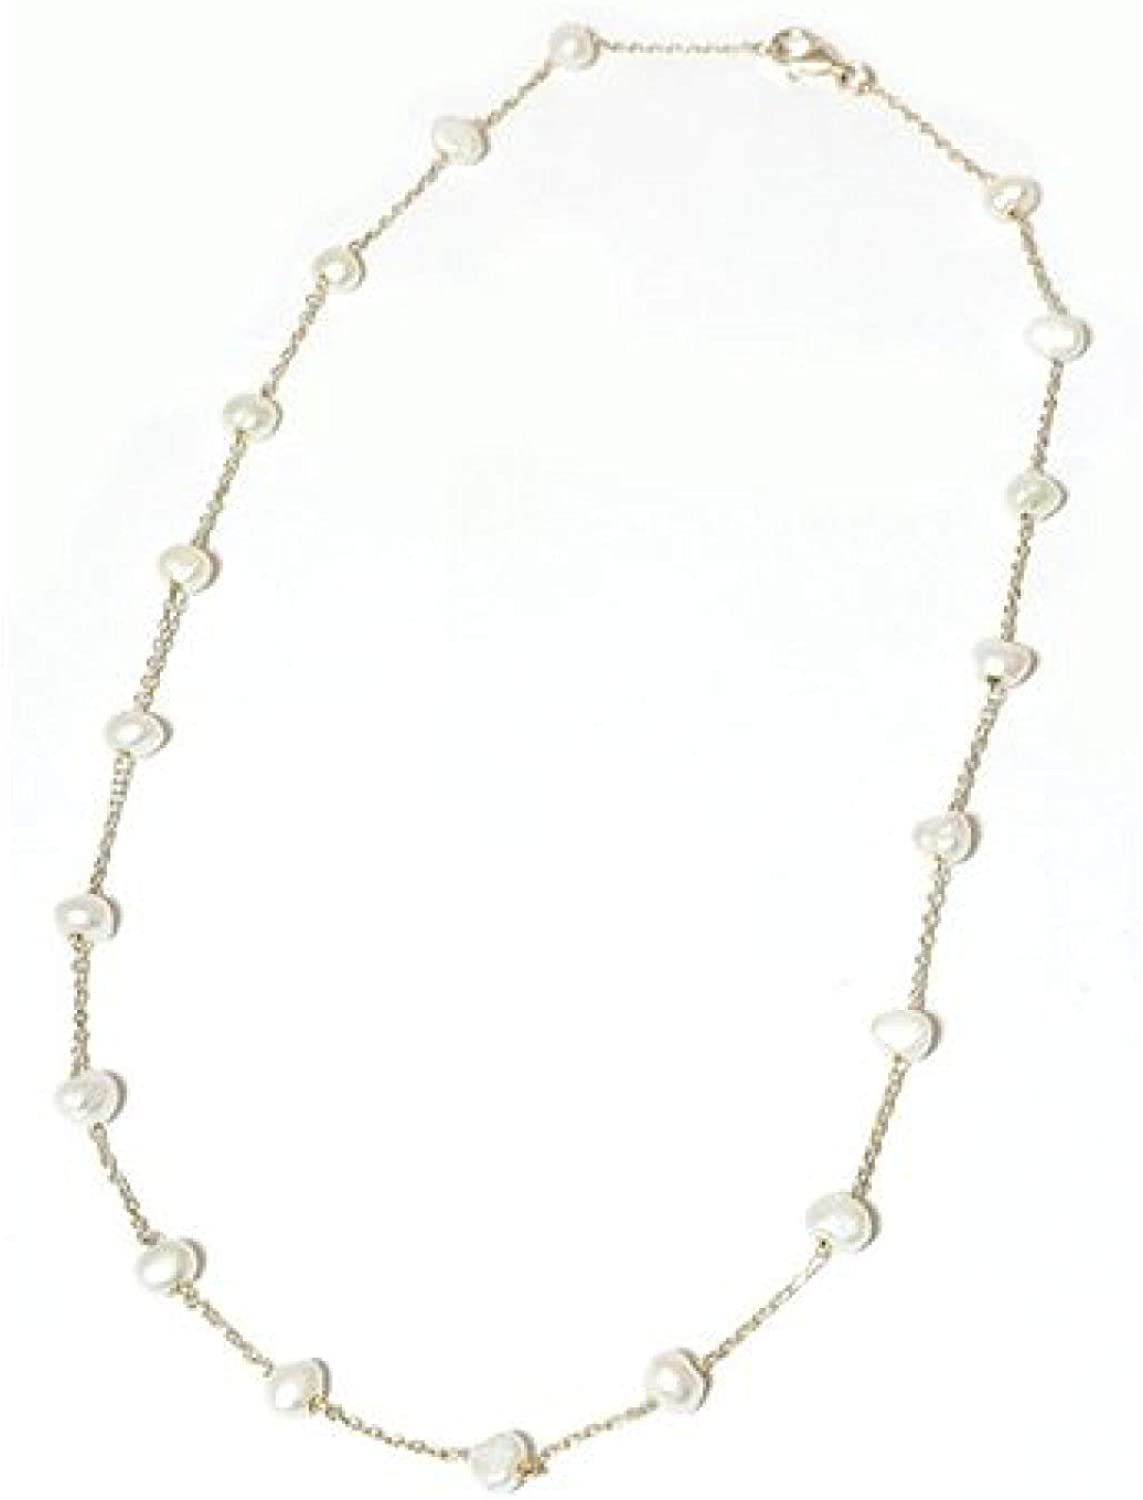 The Olivia Collection TOC Sterling Silver Freshwater Bleached White Pearl Necklace 17.5